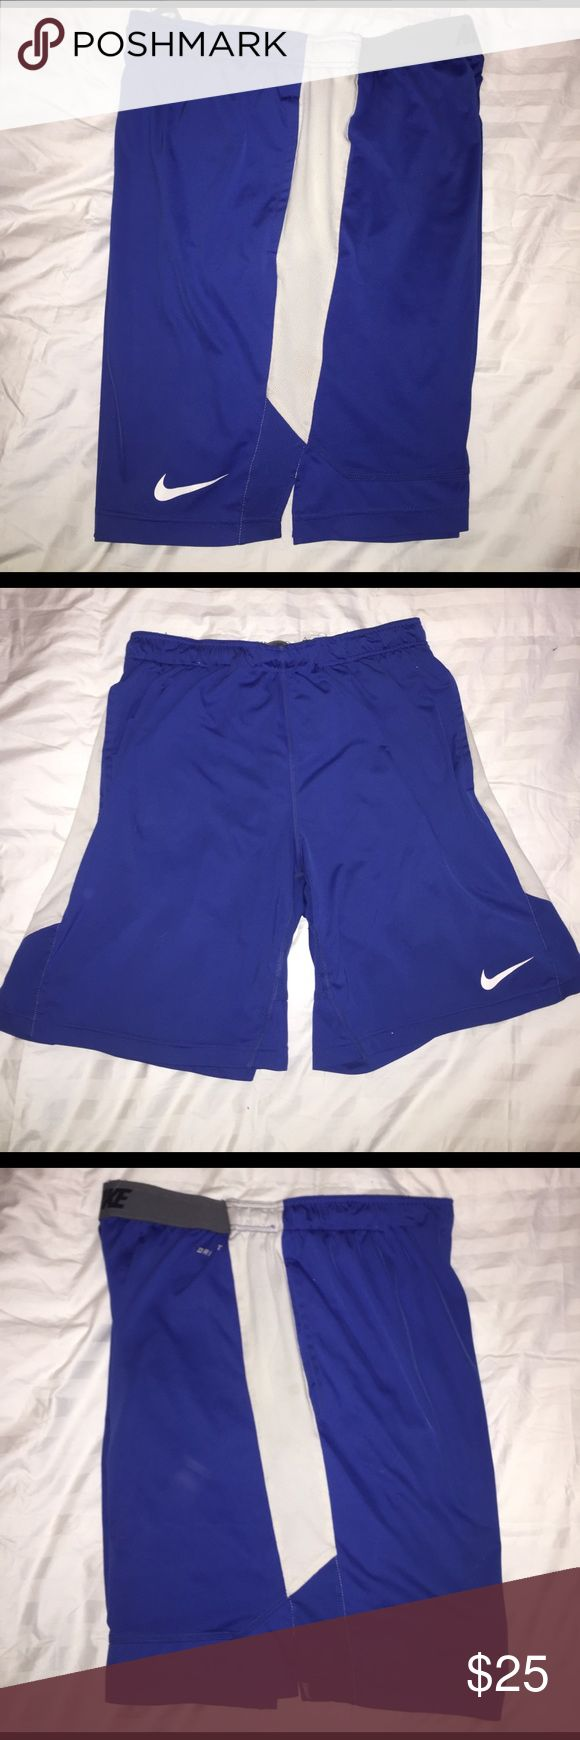 Men's Nike dri-fit shorts Men's shorts - gently used no rips /stains - smoke free home. Nike Shorts Athletic